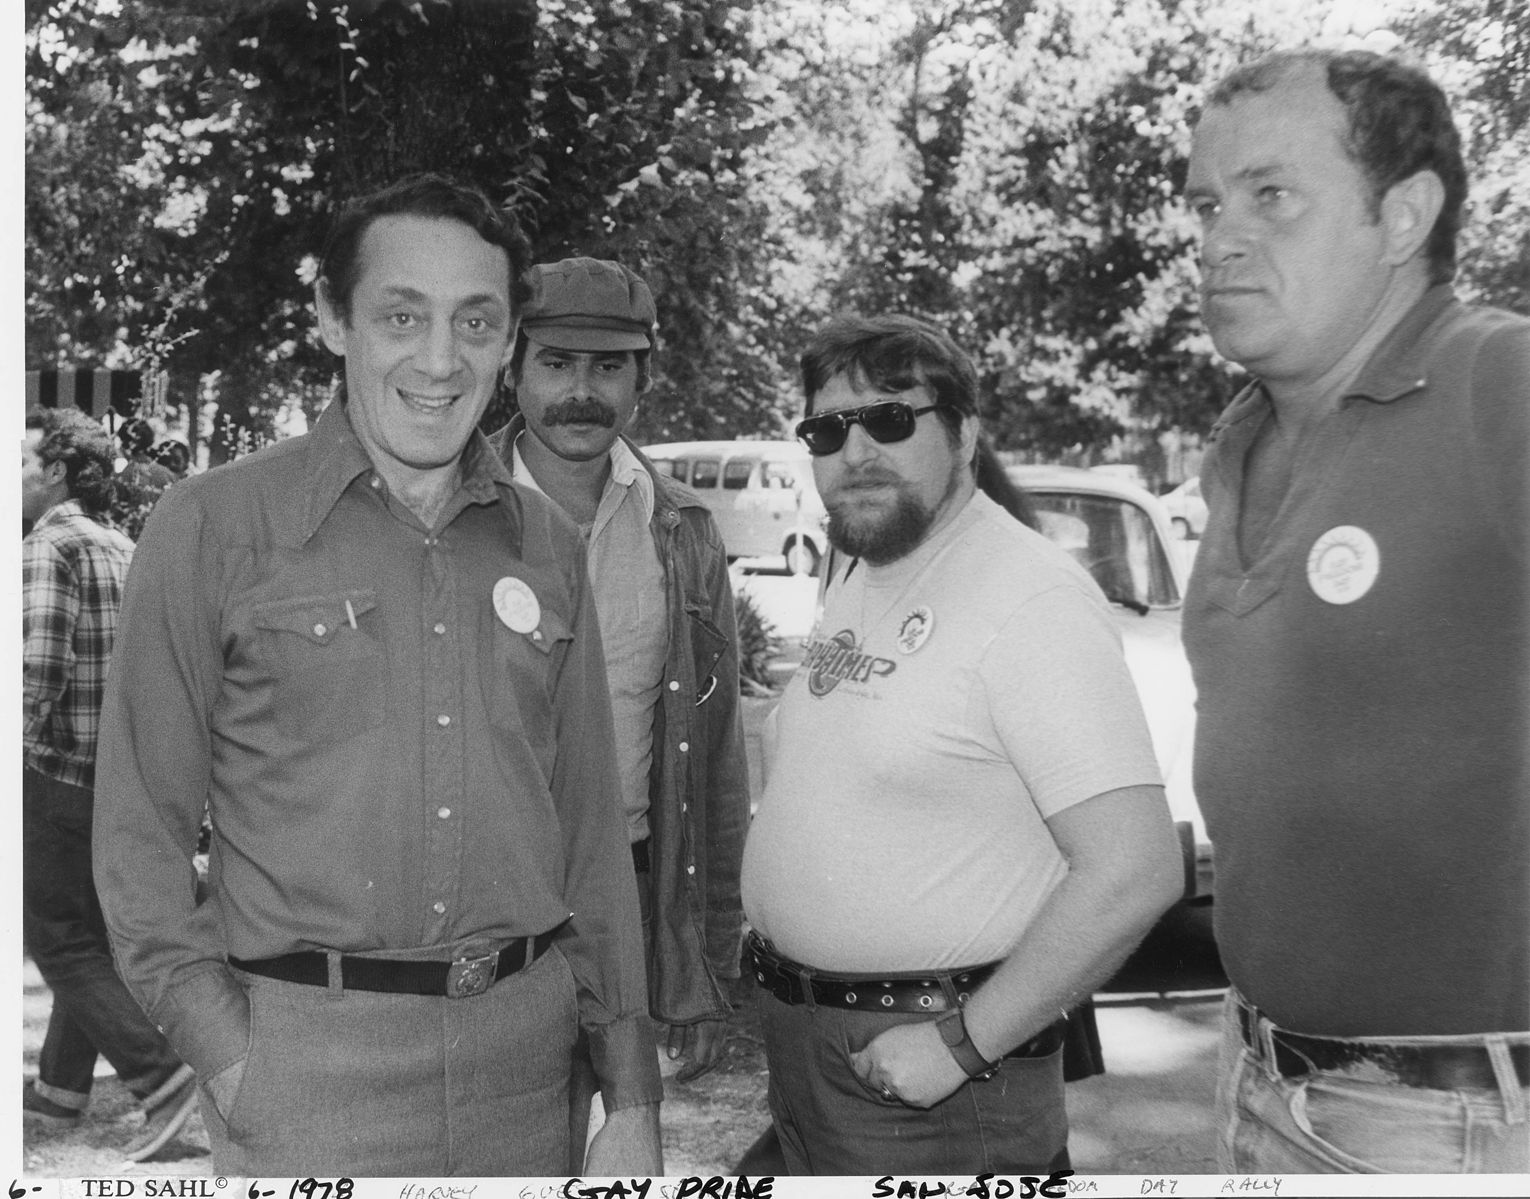 Harvey Milk circa 1978, advocating for gay and lesbian rights and building gayborhoods